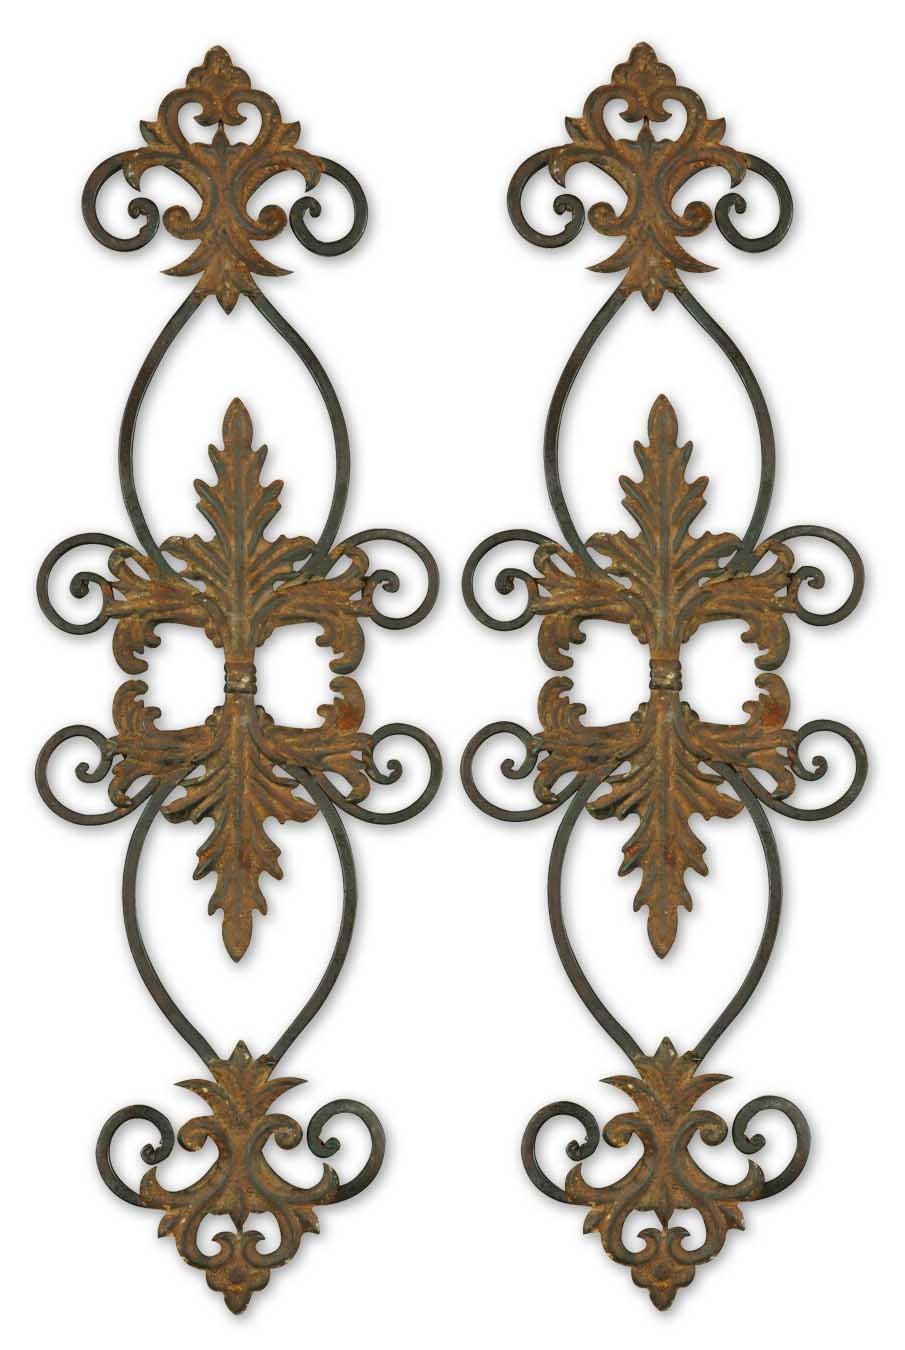 uttermost 13387 lacole rustic metal wall art set 2. Black Bedroom Furniture Sets. Home Design Ideas